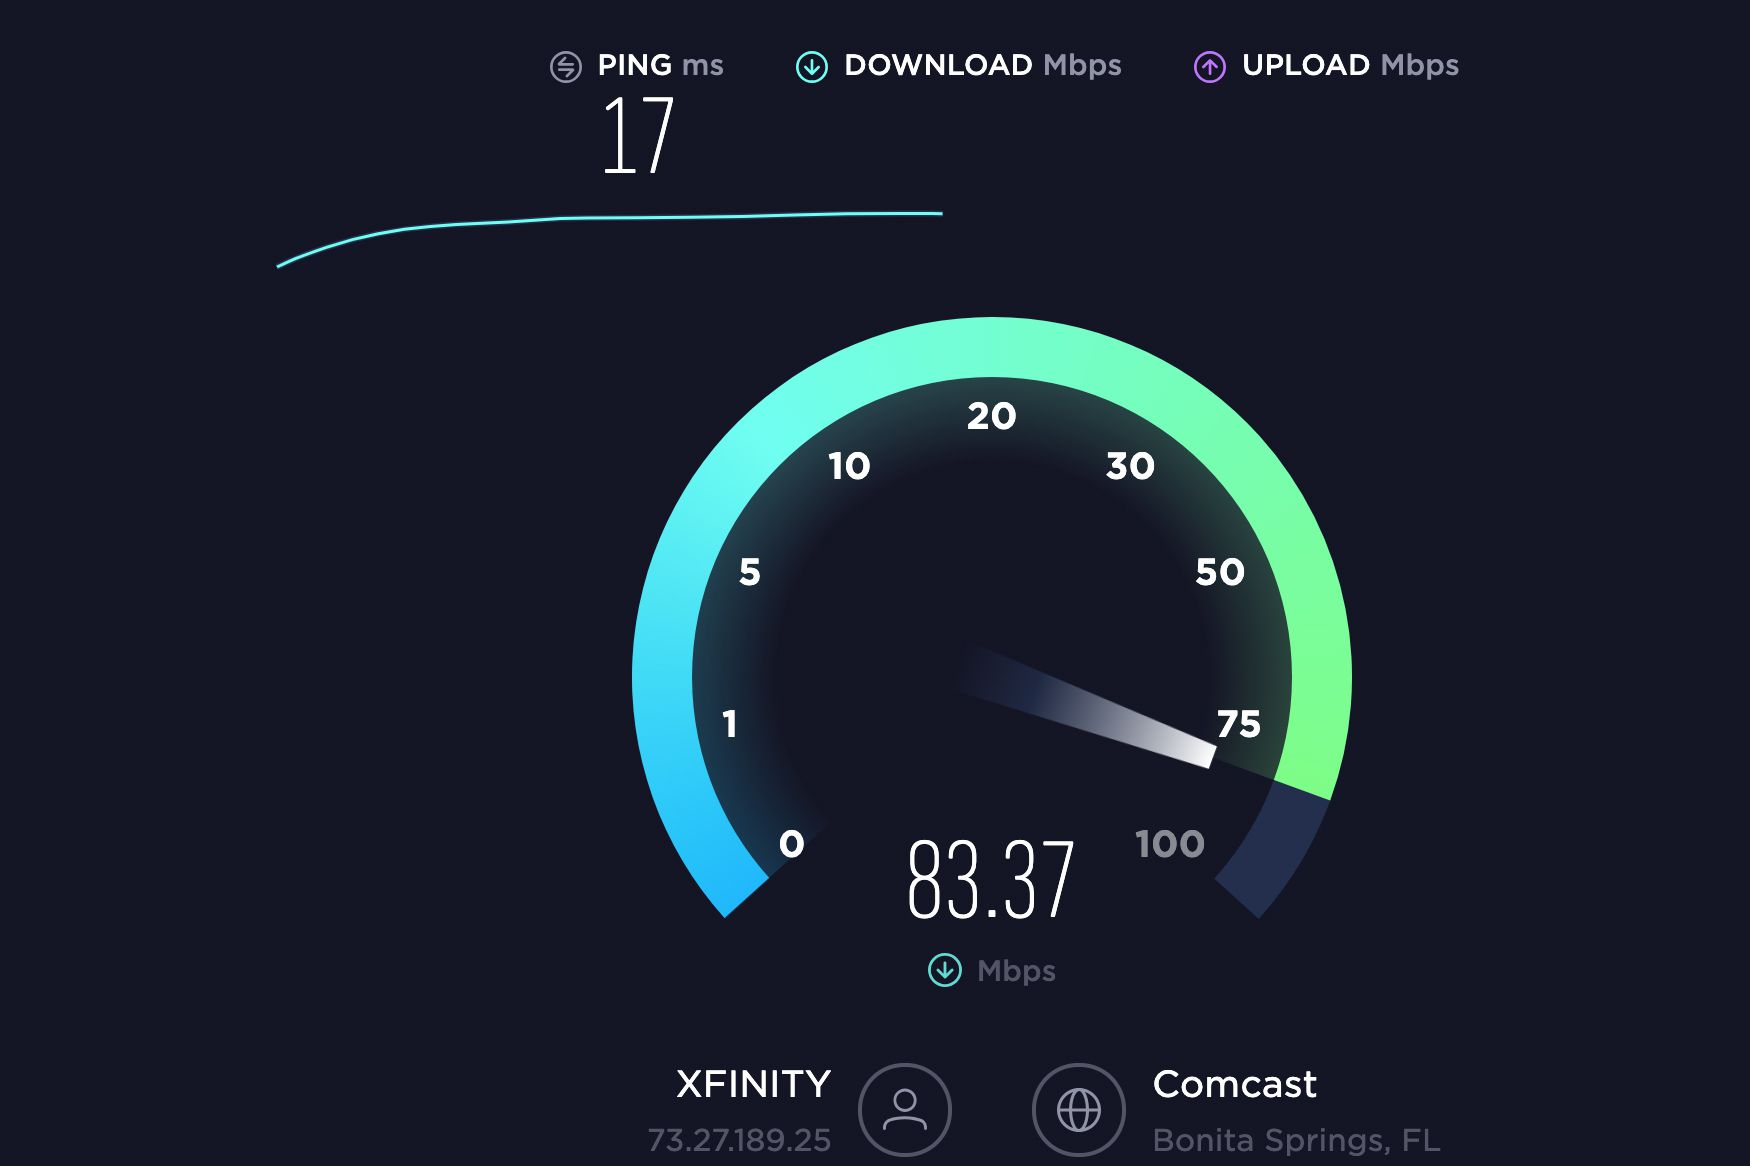 Is Your Broadband Fast Enough to Stream Audio?